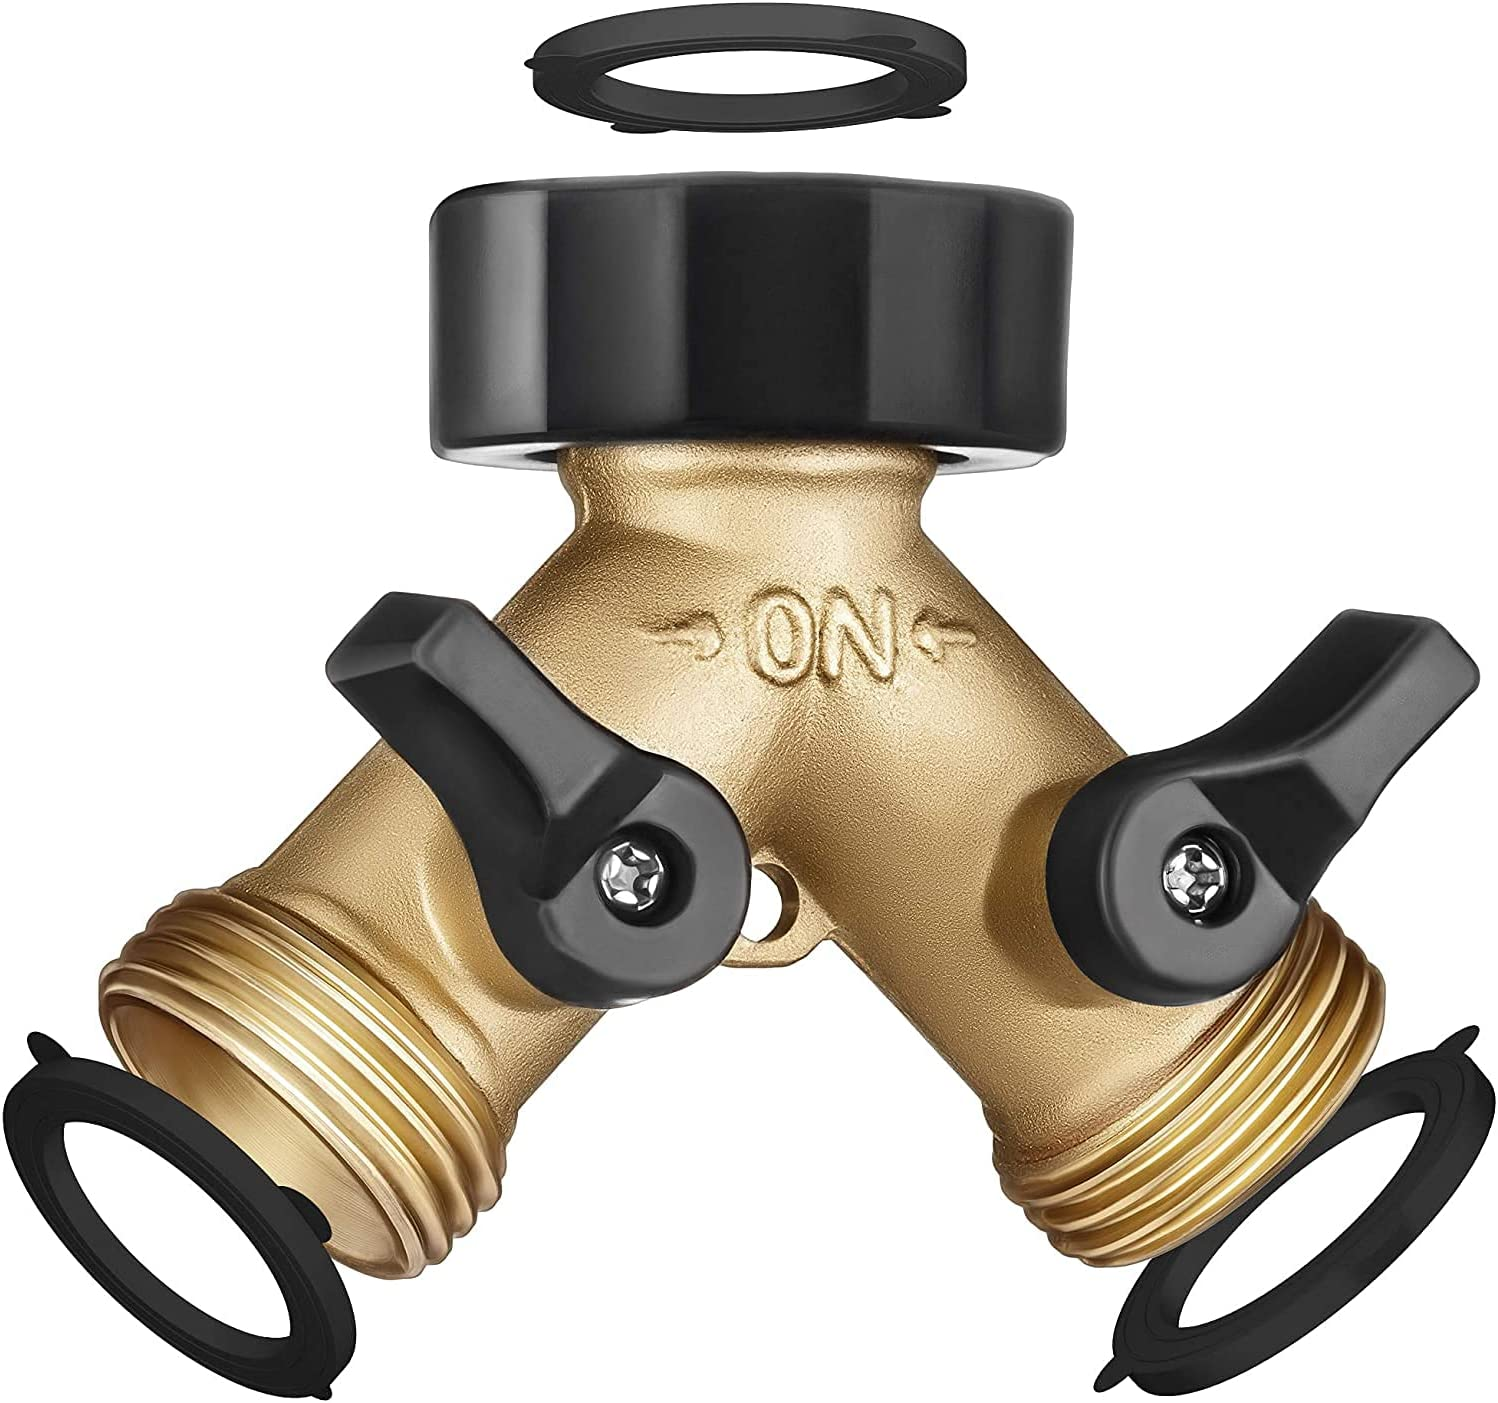 Trazon Brass Garden Hose Splitter 2 Way, Garden Y Hose Connector Metal Body, Water Hose Splitter with Comfortable Grip, Hose Splitter 2 Way Heavy Duty for Outdoor and Indoor Use, Plus 3 Extra Washers